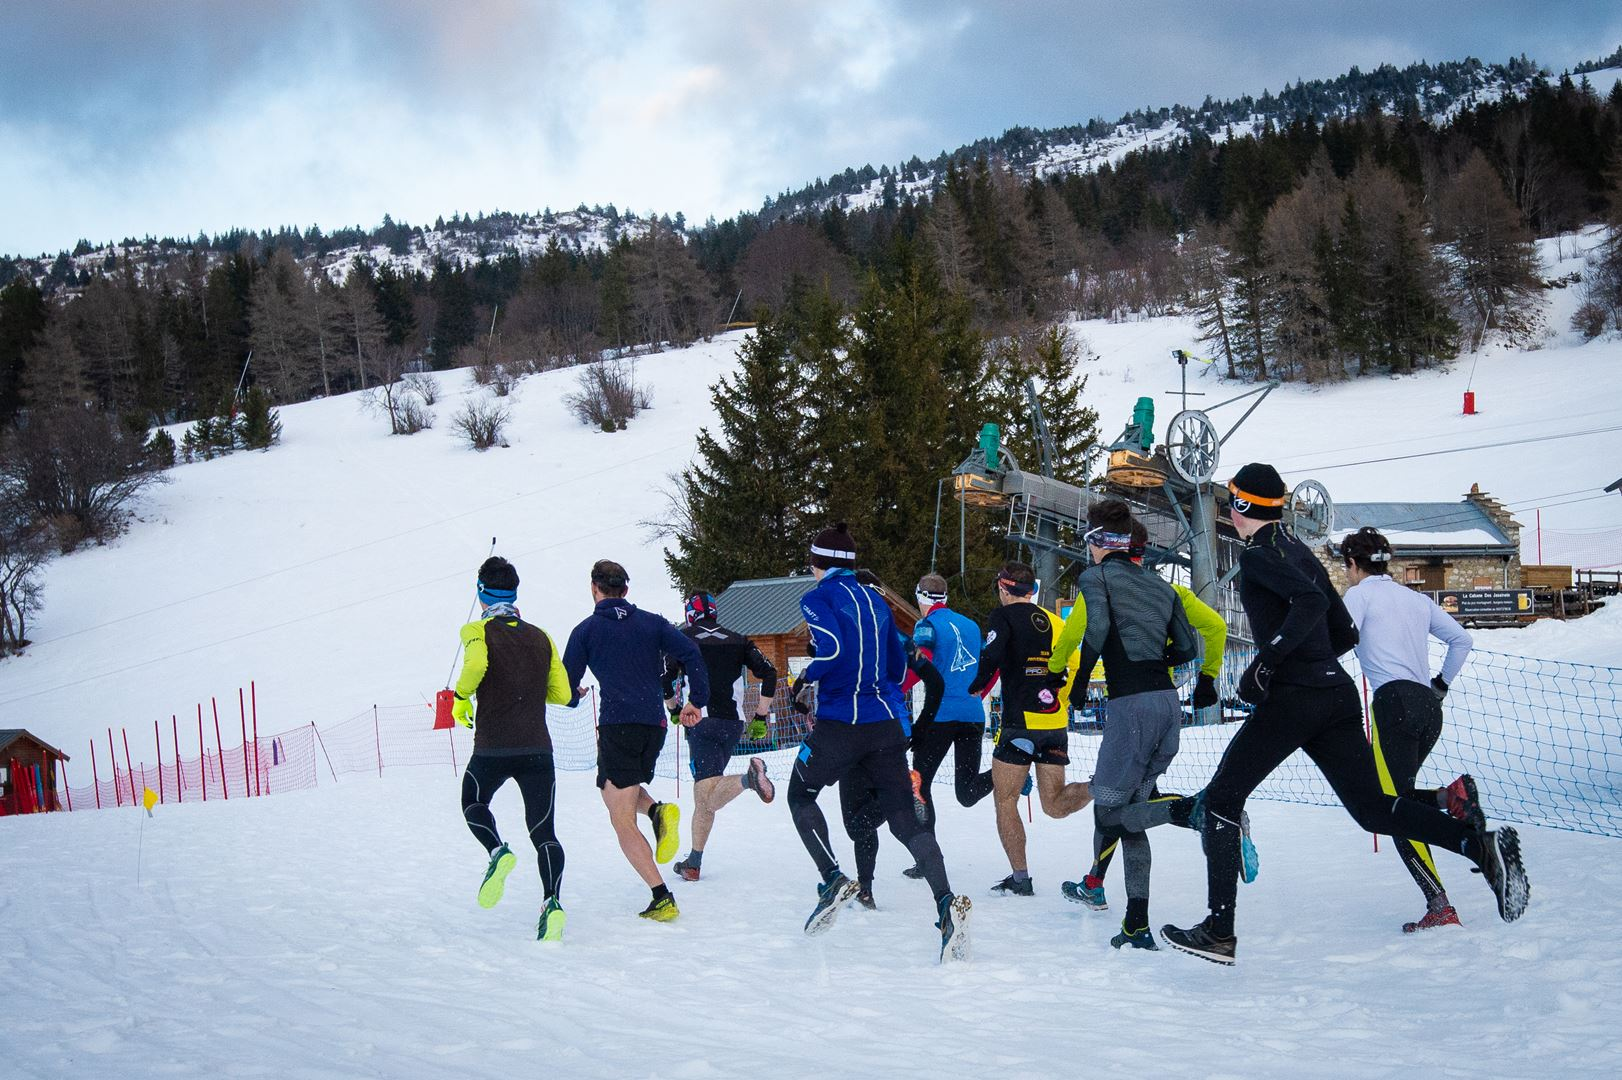 winter sibo trail 2020 HD aufildeslumieres 0023 - RESULTATS ET PHOTOS DU WINTER SIBOTRAIL LANS EN VERCORS (07/03/2020)